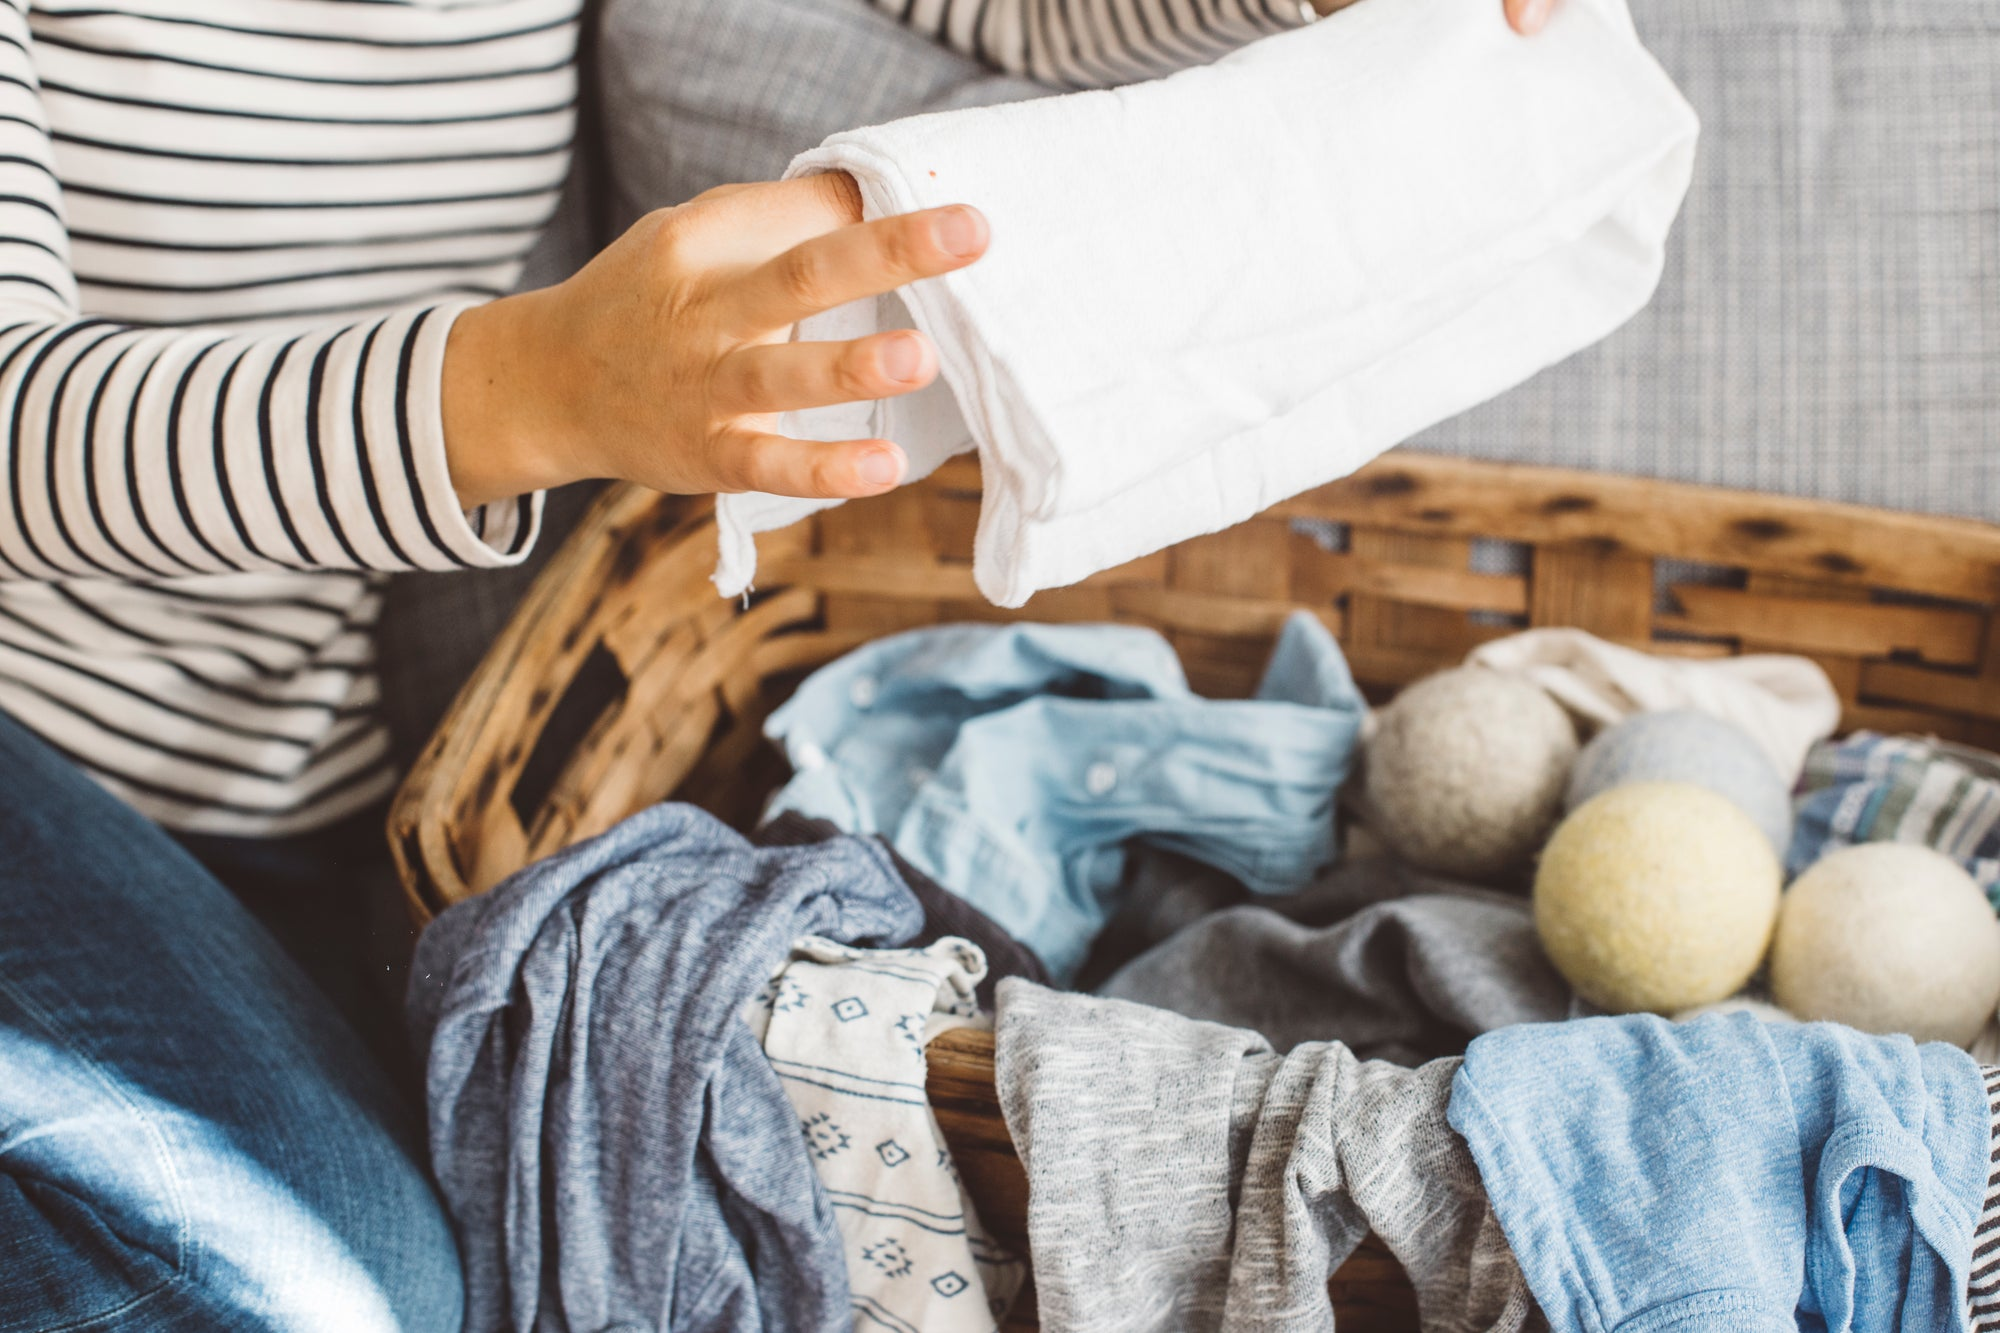 What Sort of Laundry Maven are You?